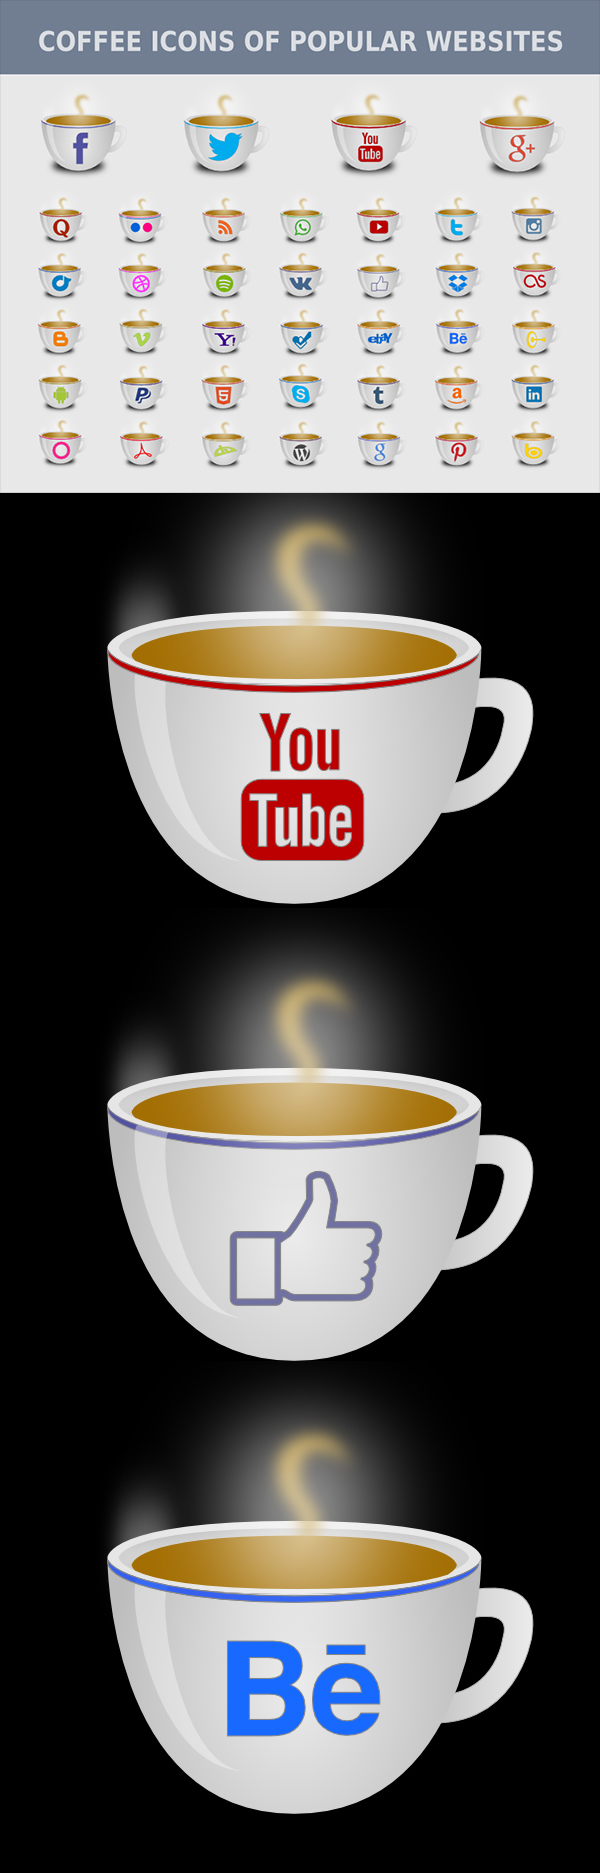 Social Media Coffee Icons